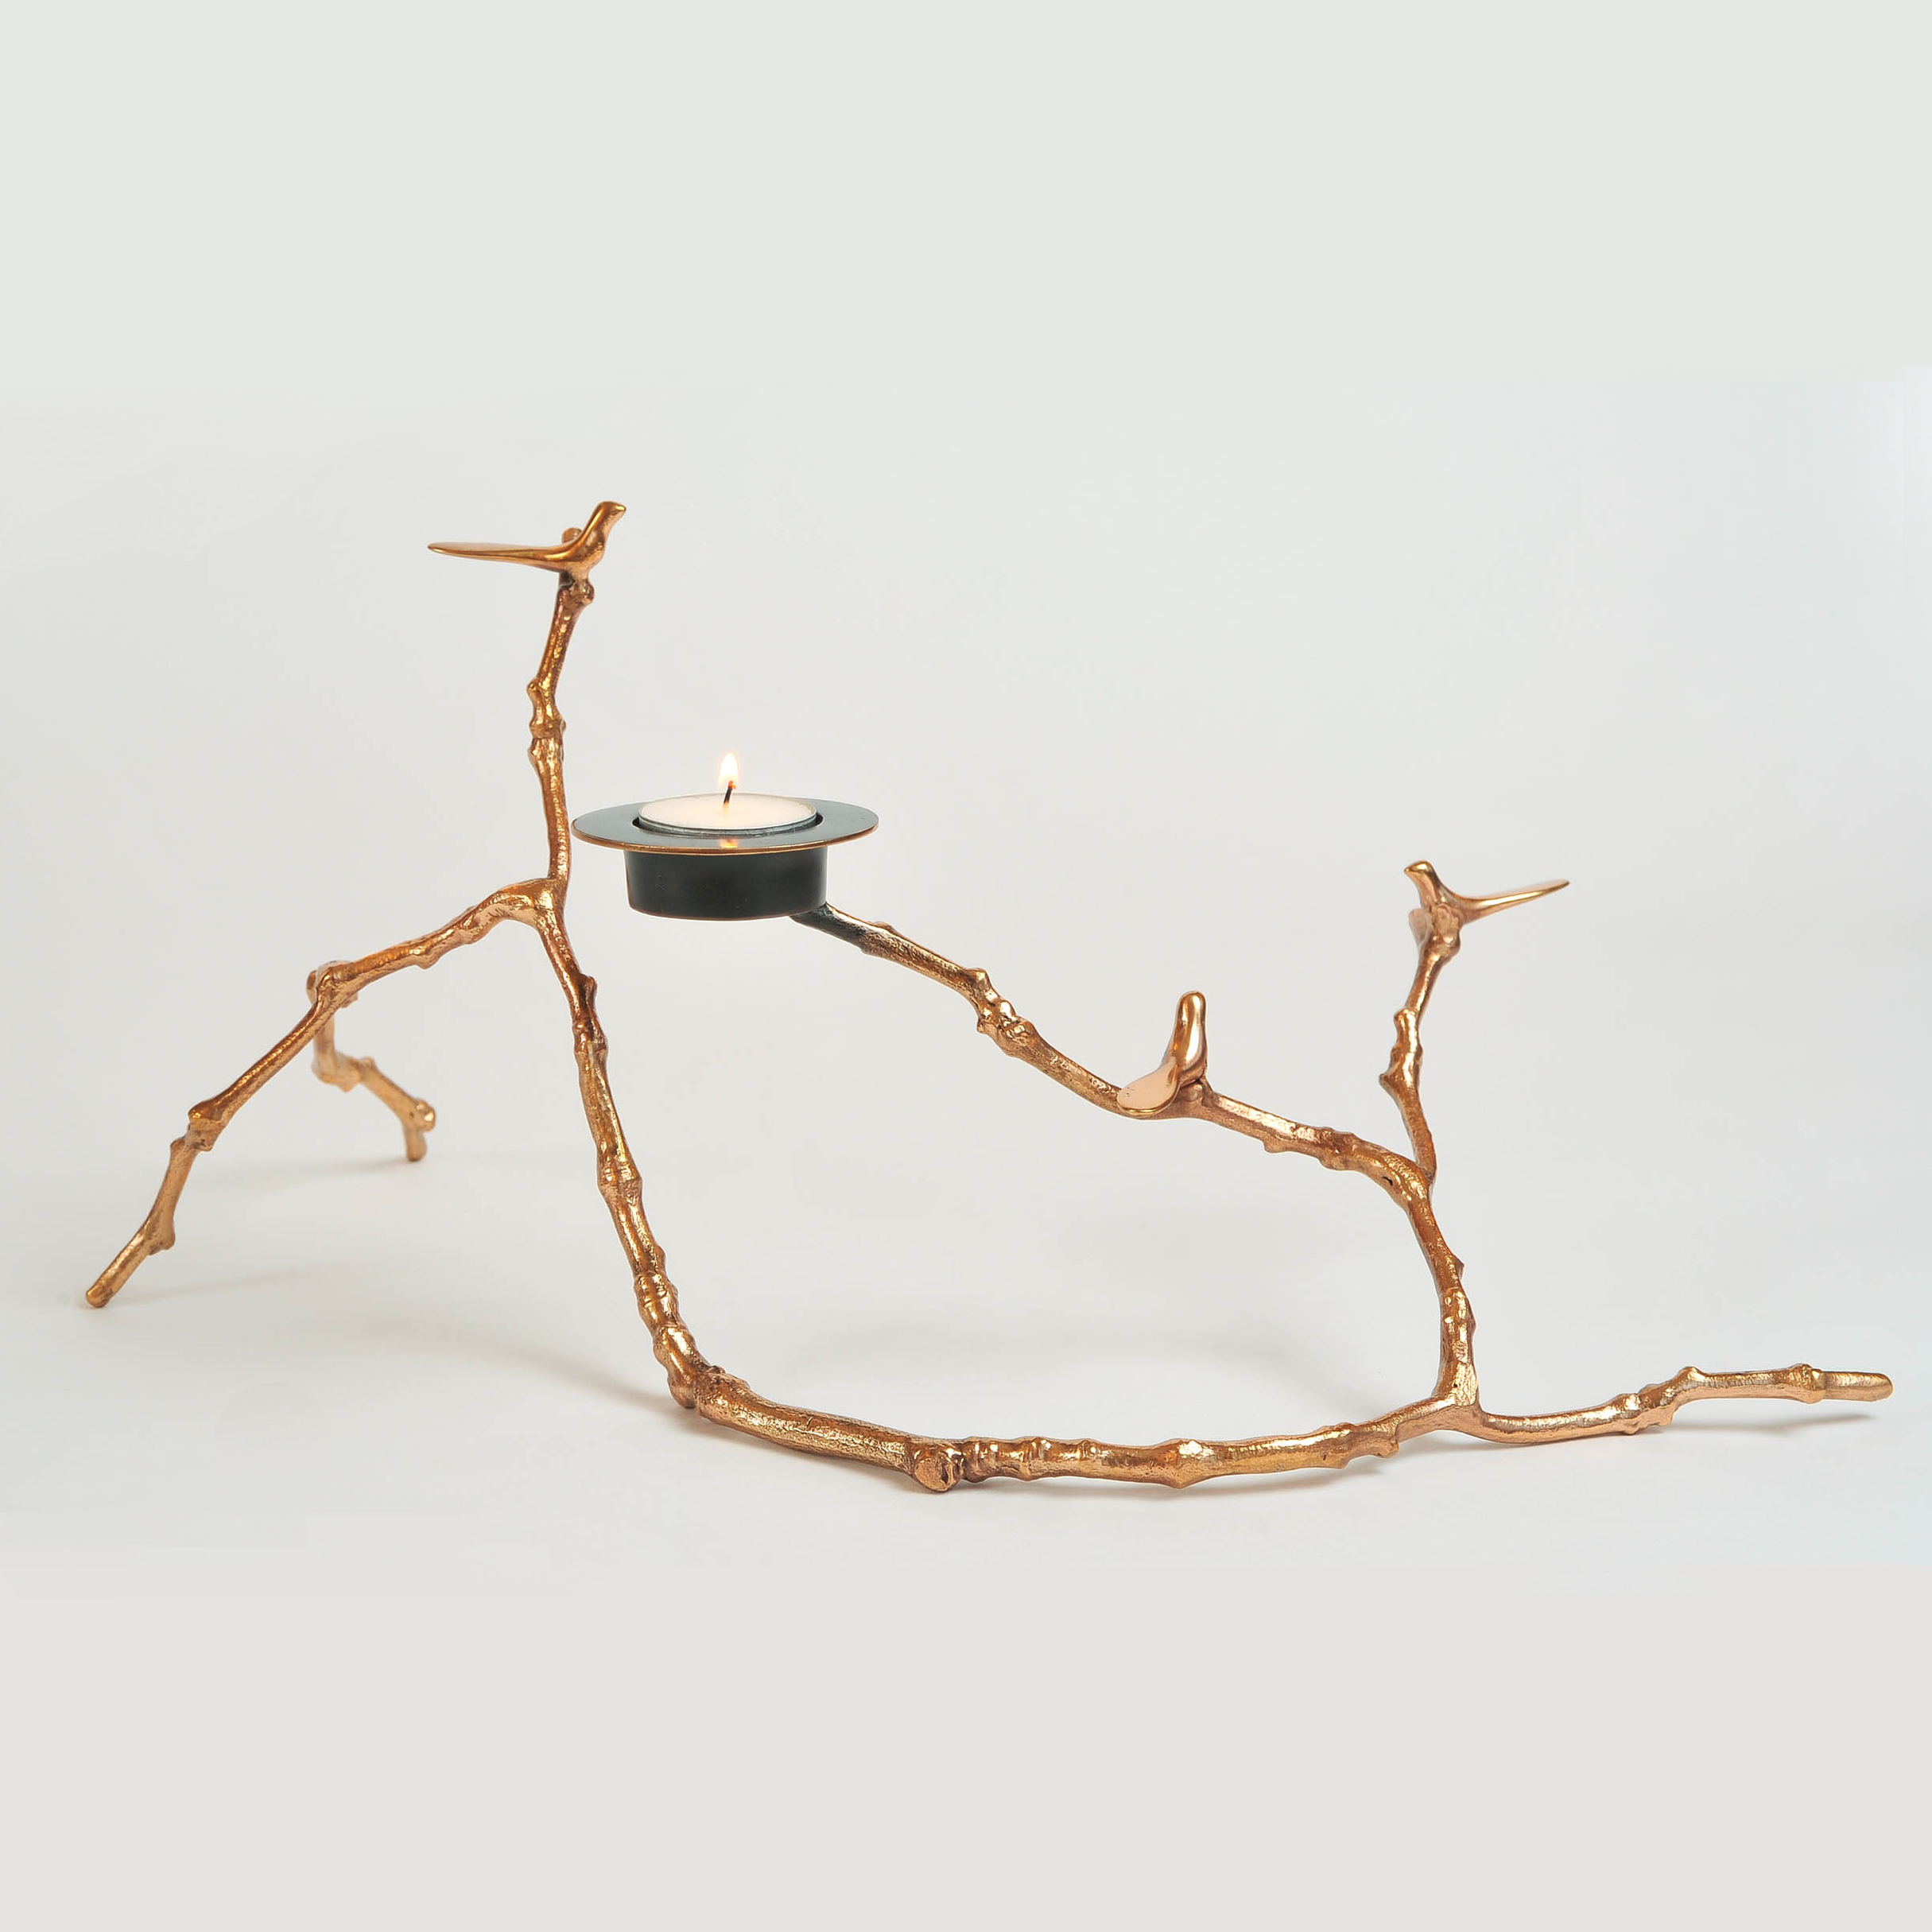 The image for Valerie Wade Twig Candle Holder Copper 02